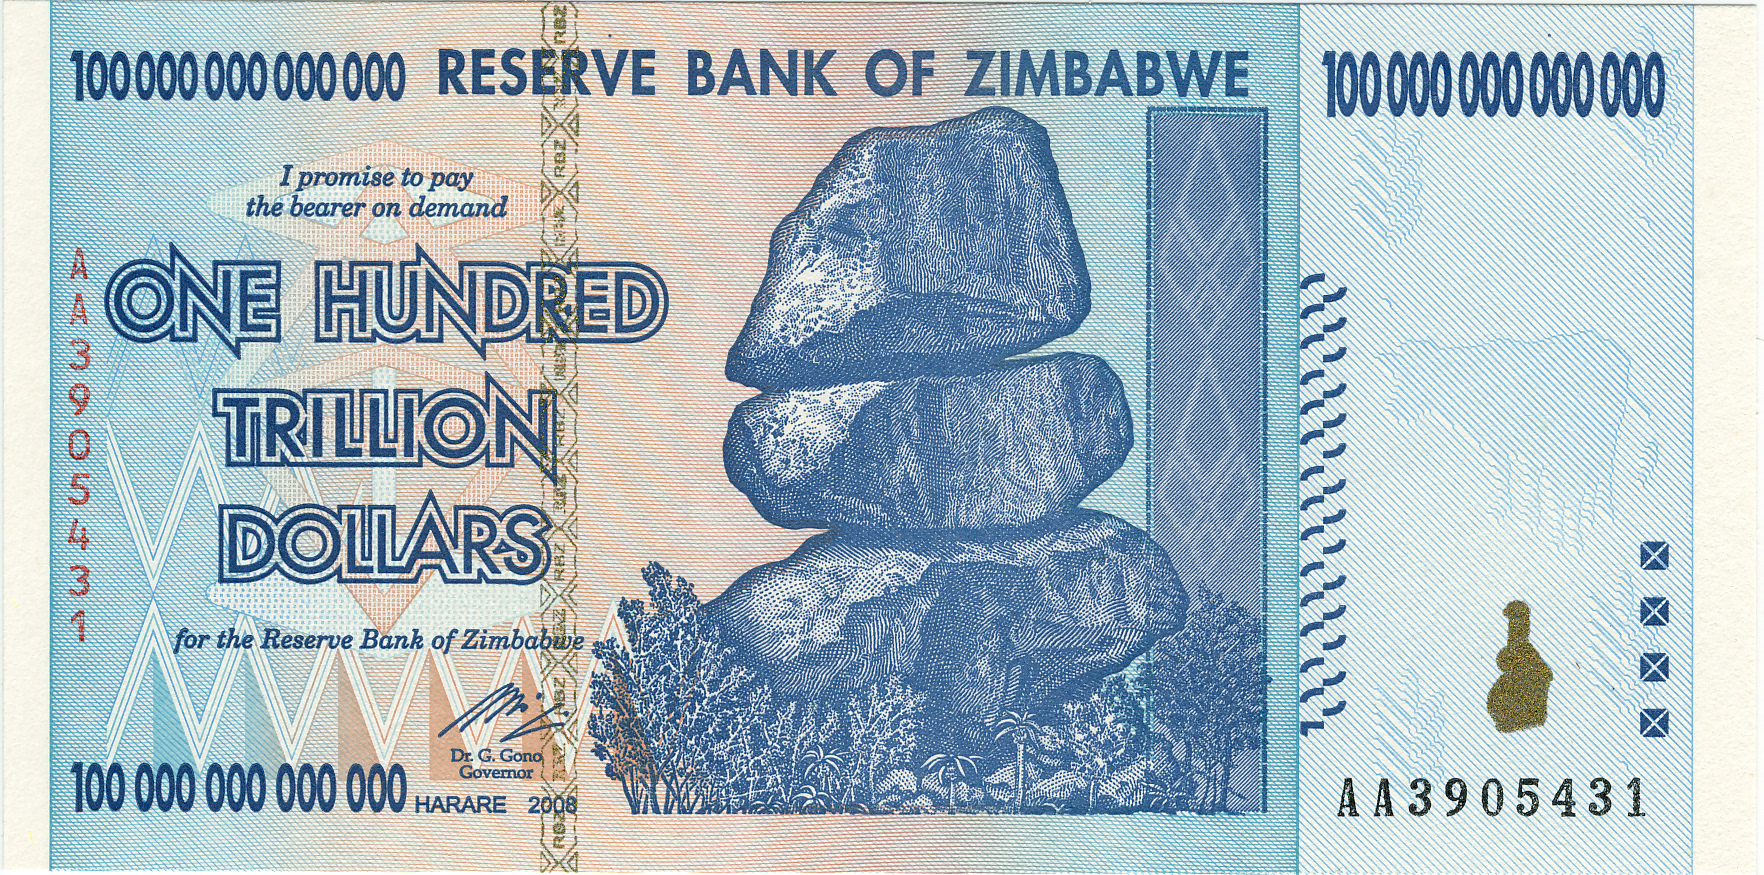 ZIMBABWE 50 TRILLION DOLLAR NOTES 2008 TEN NOTES